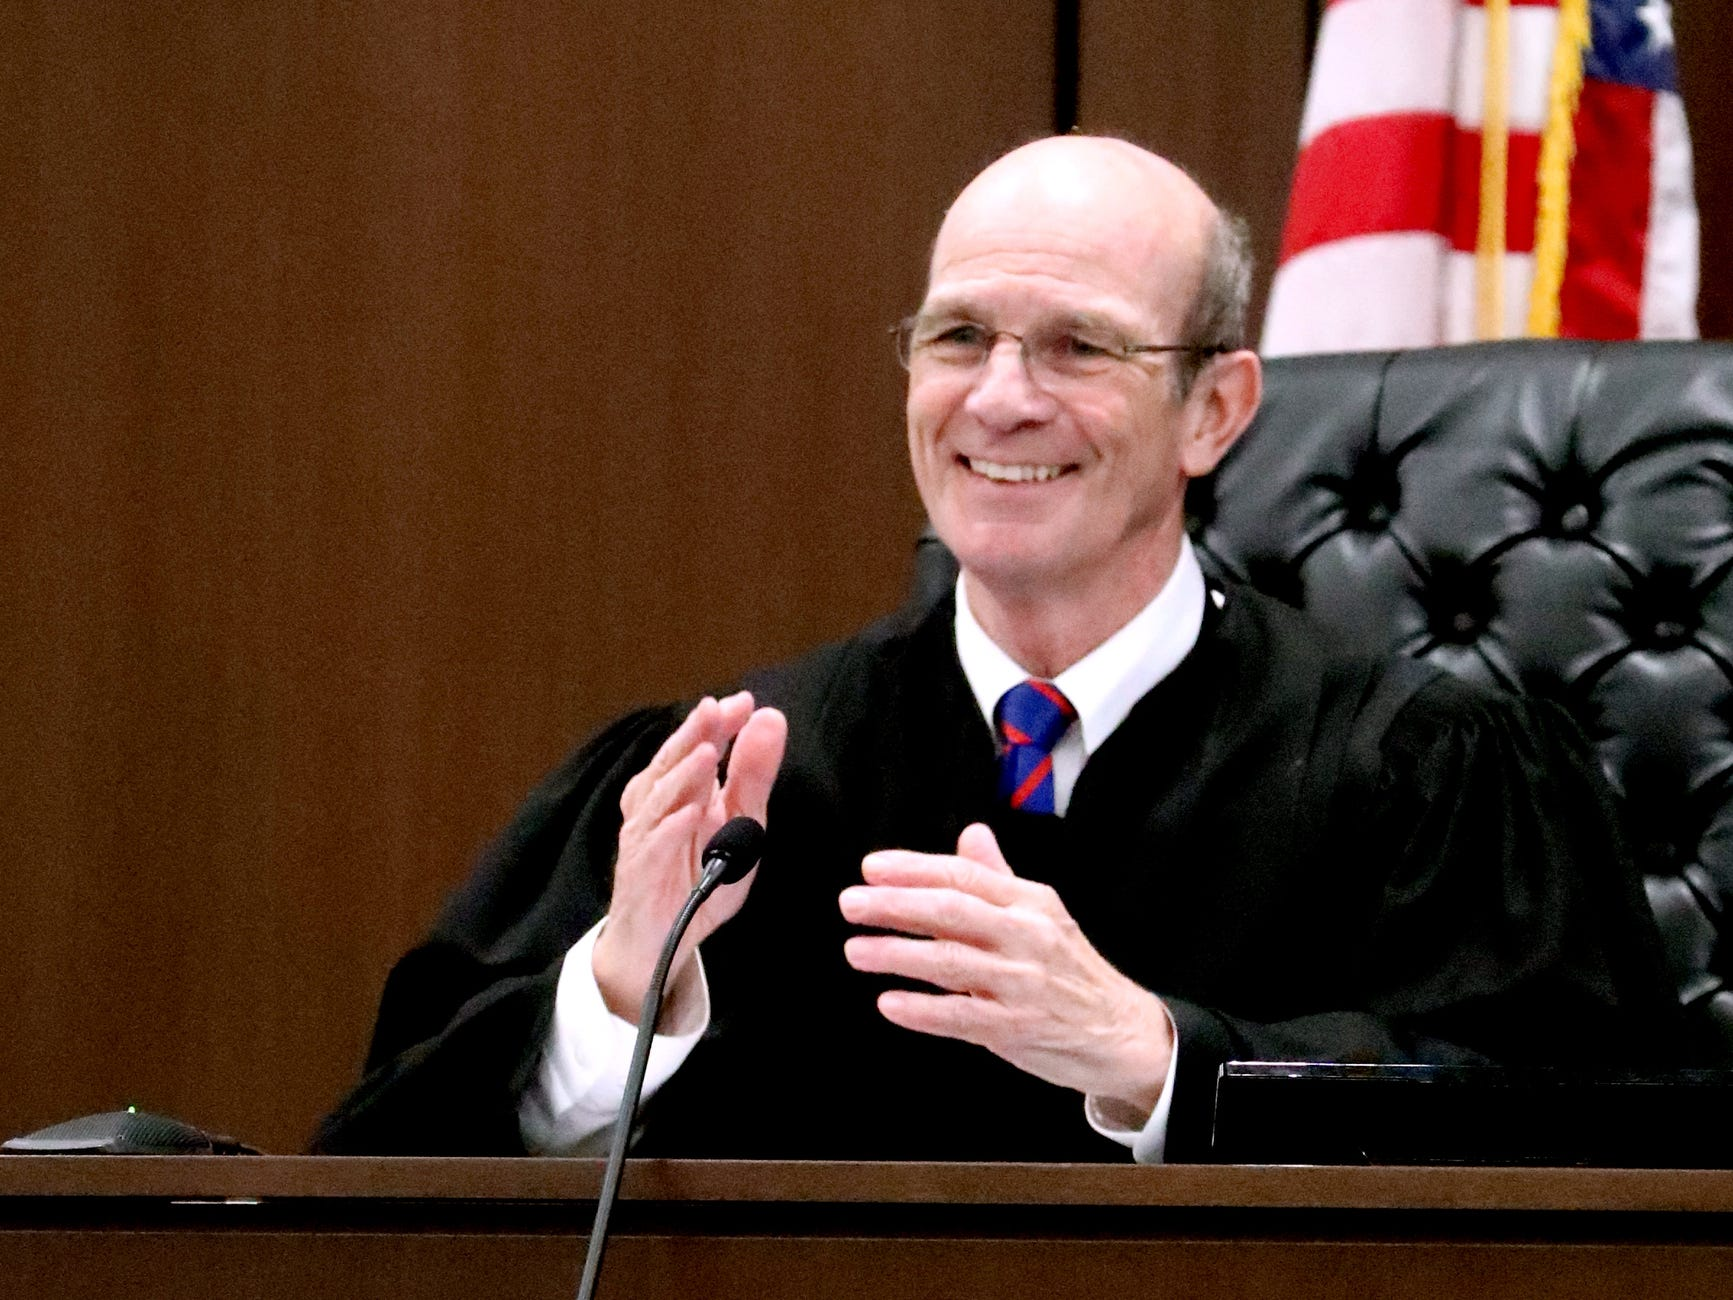 Judge Ben Hall McFarlin Jr. fills in for Judge Barry Tidwell during Mental Health Court. McFarlin claps for and then asks the participants to come up and get a reward if they have done well with their progress on Friday, Feb. 22, 2019.  After the docket, a two year anniversary celebration was held to celebrate the success of the Mental Health Court program.